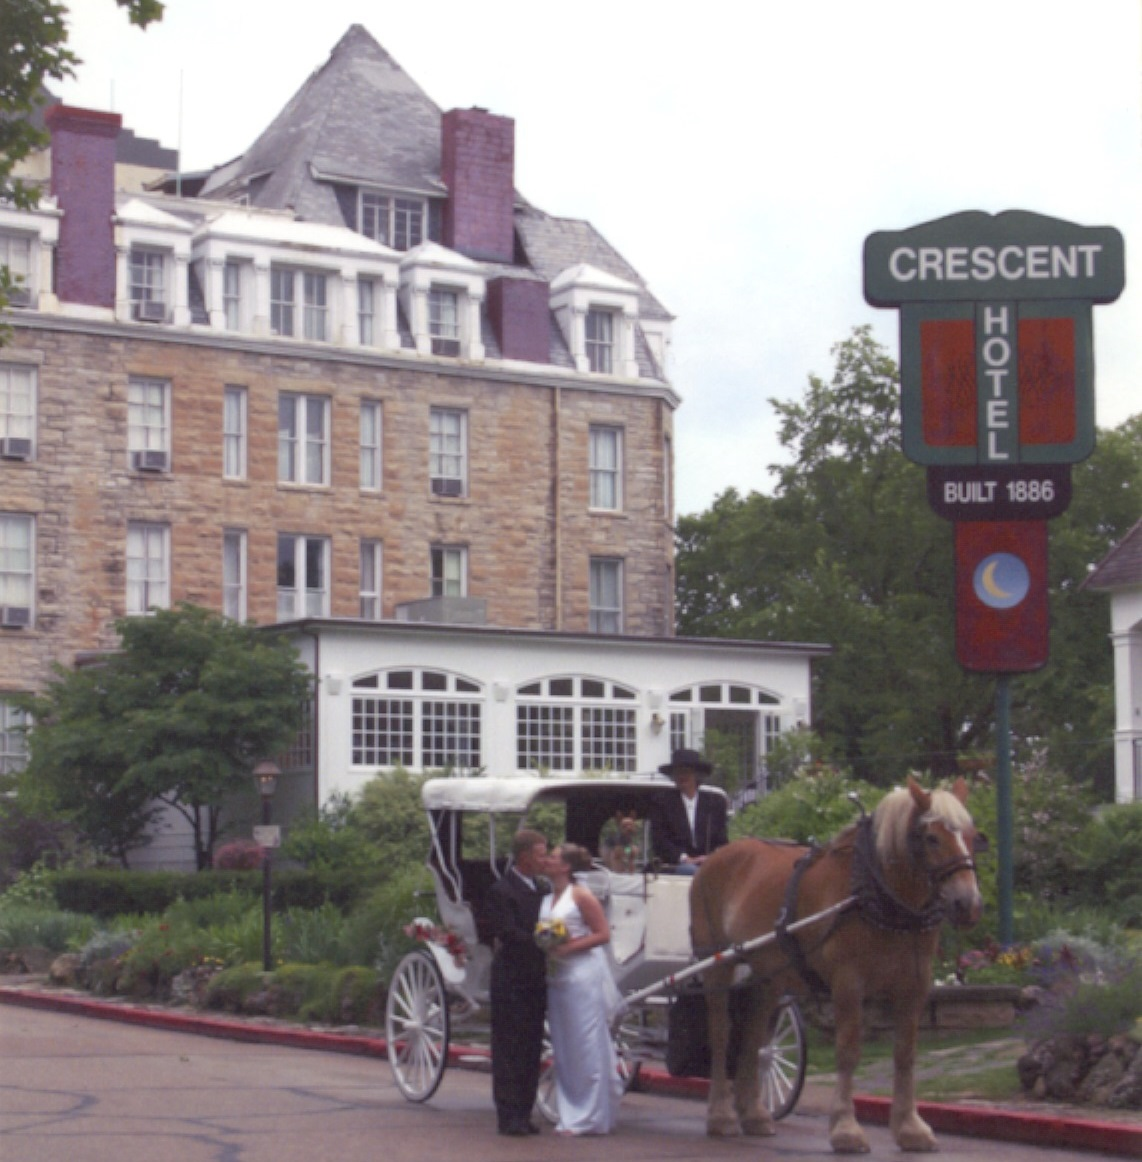 A newly married couple poses in front of the Crescent Hotel (1886) in historic Eureka Springs, Arkansas